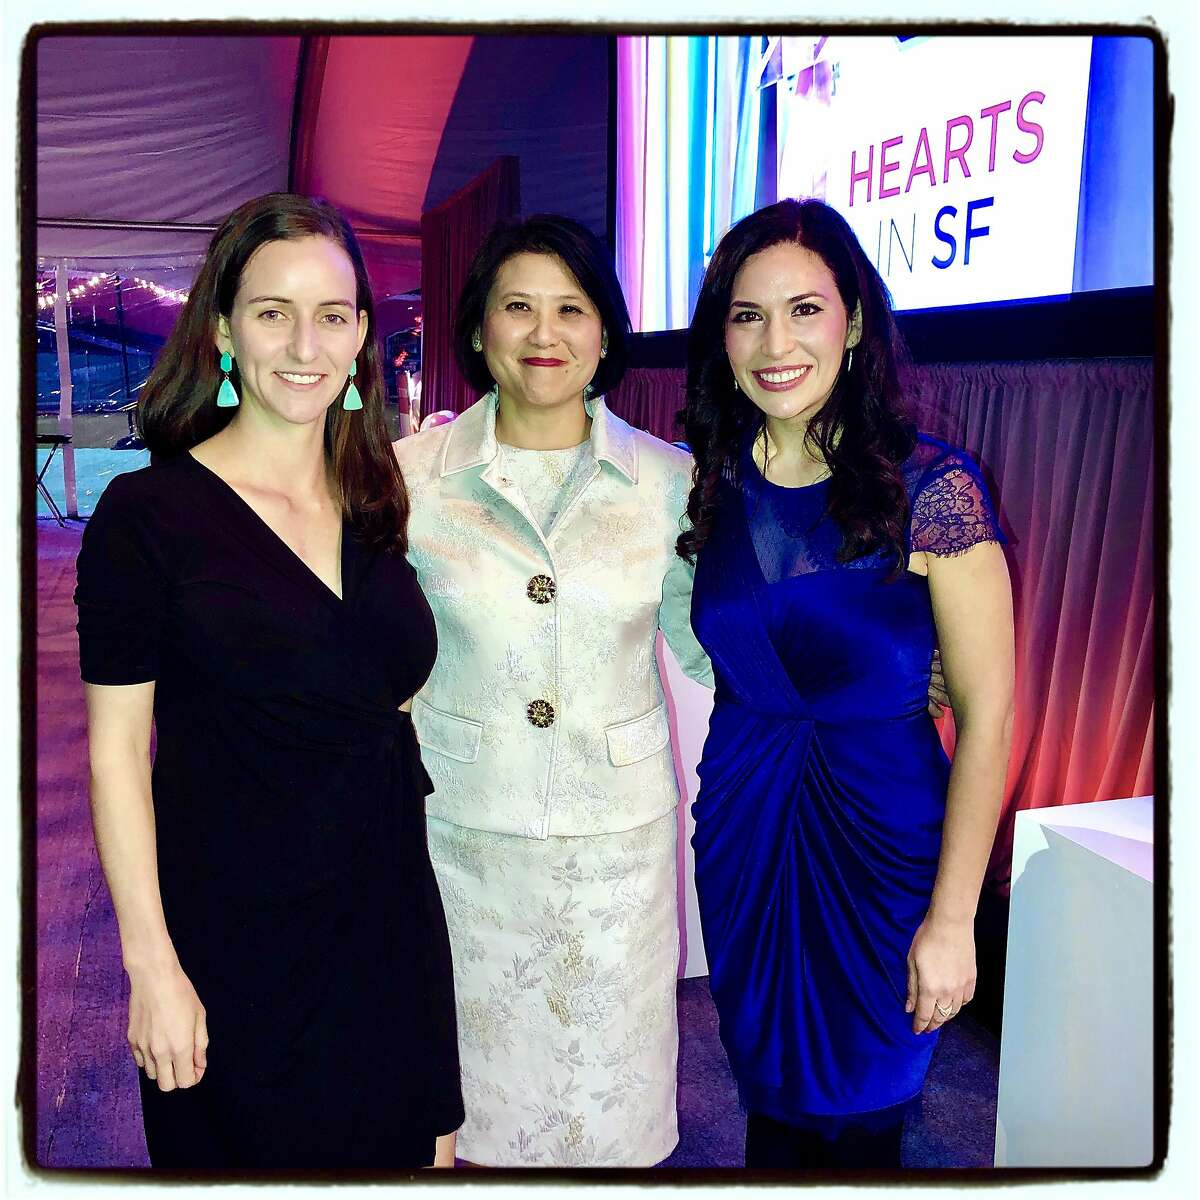 Dr. Hannah Snyder (left) with Kaiser Permanente COO Janet Liang and Dr. Marlene Martin at the Hearts in SF fundraiser. Feb. 13, 2020.